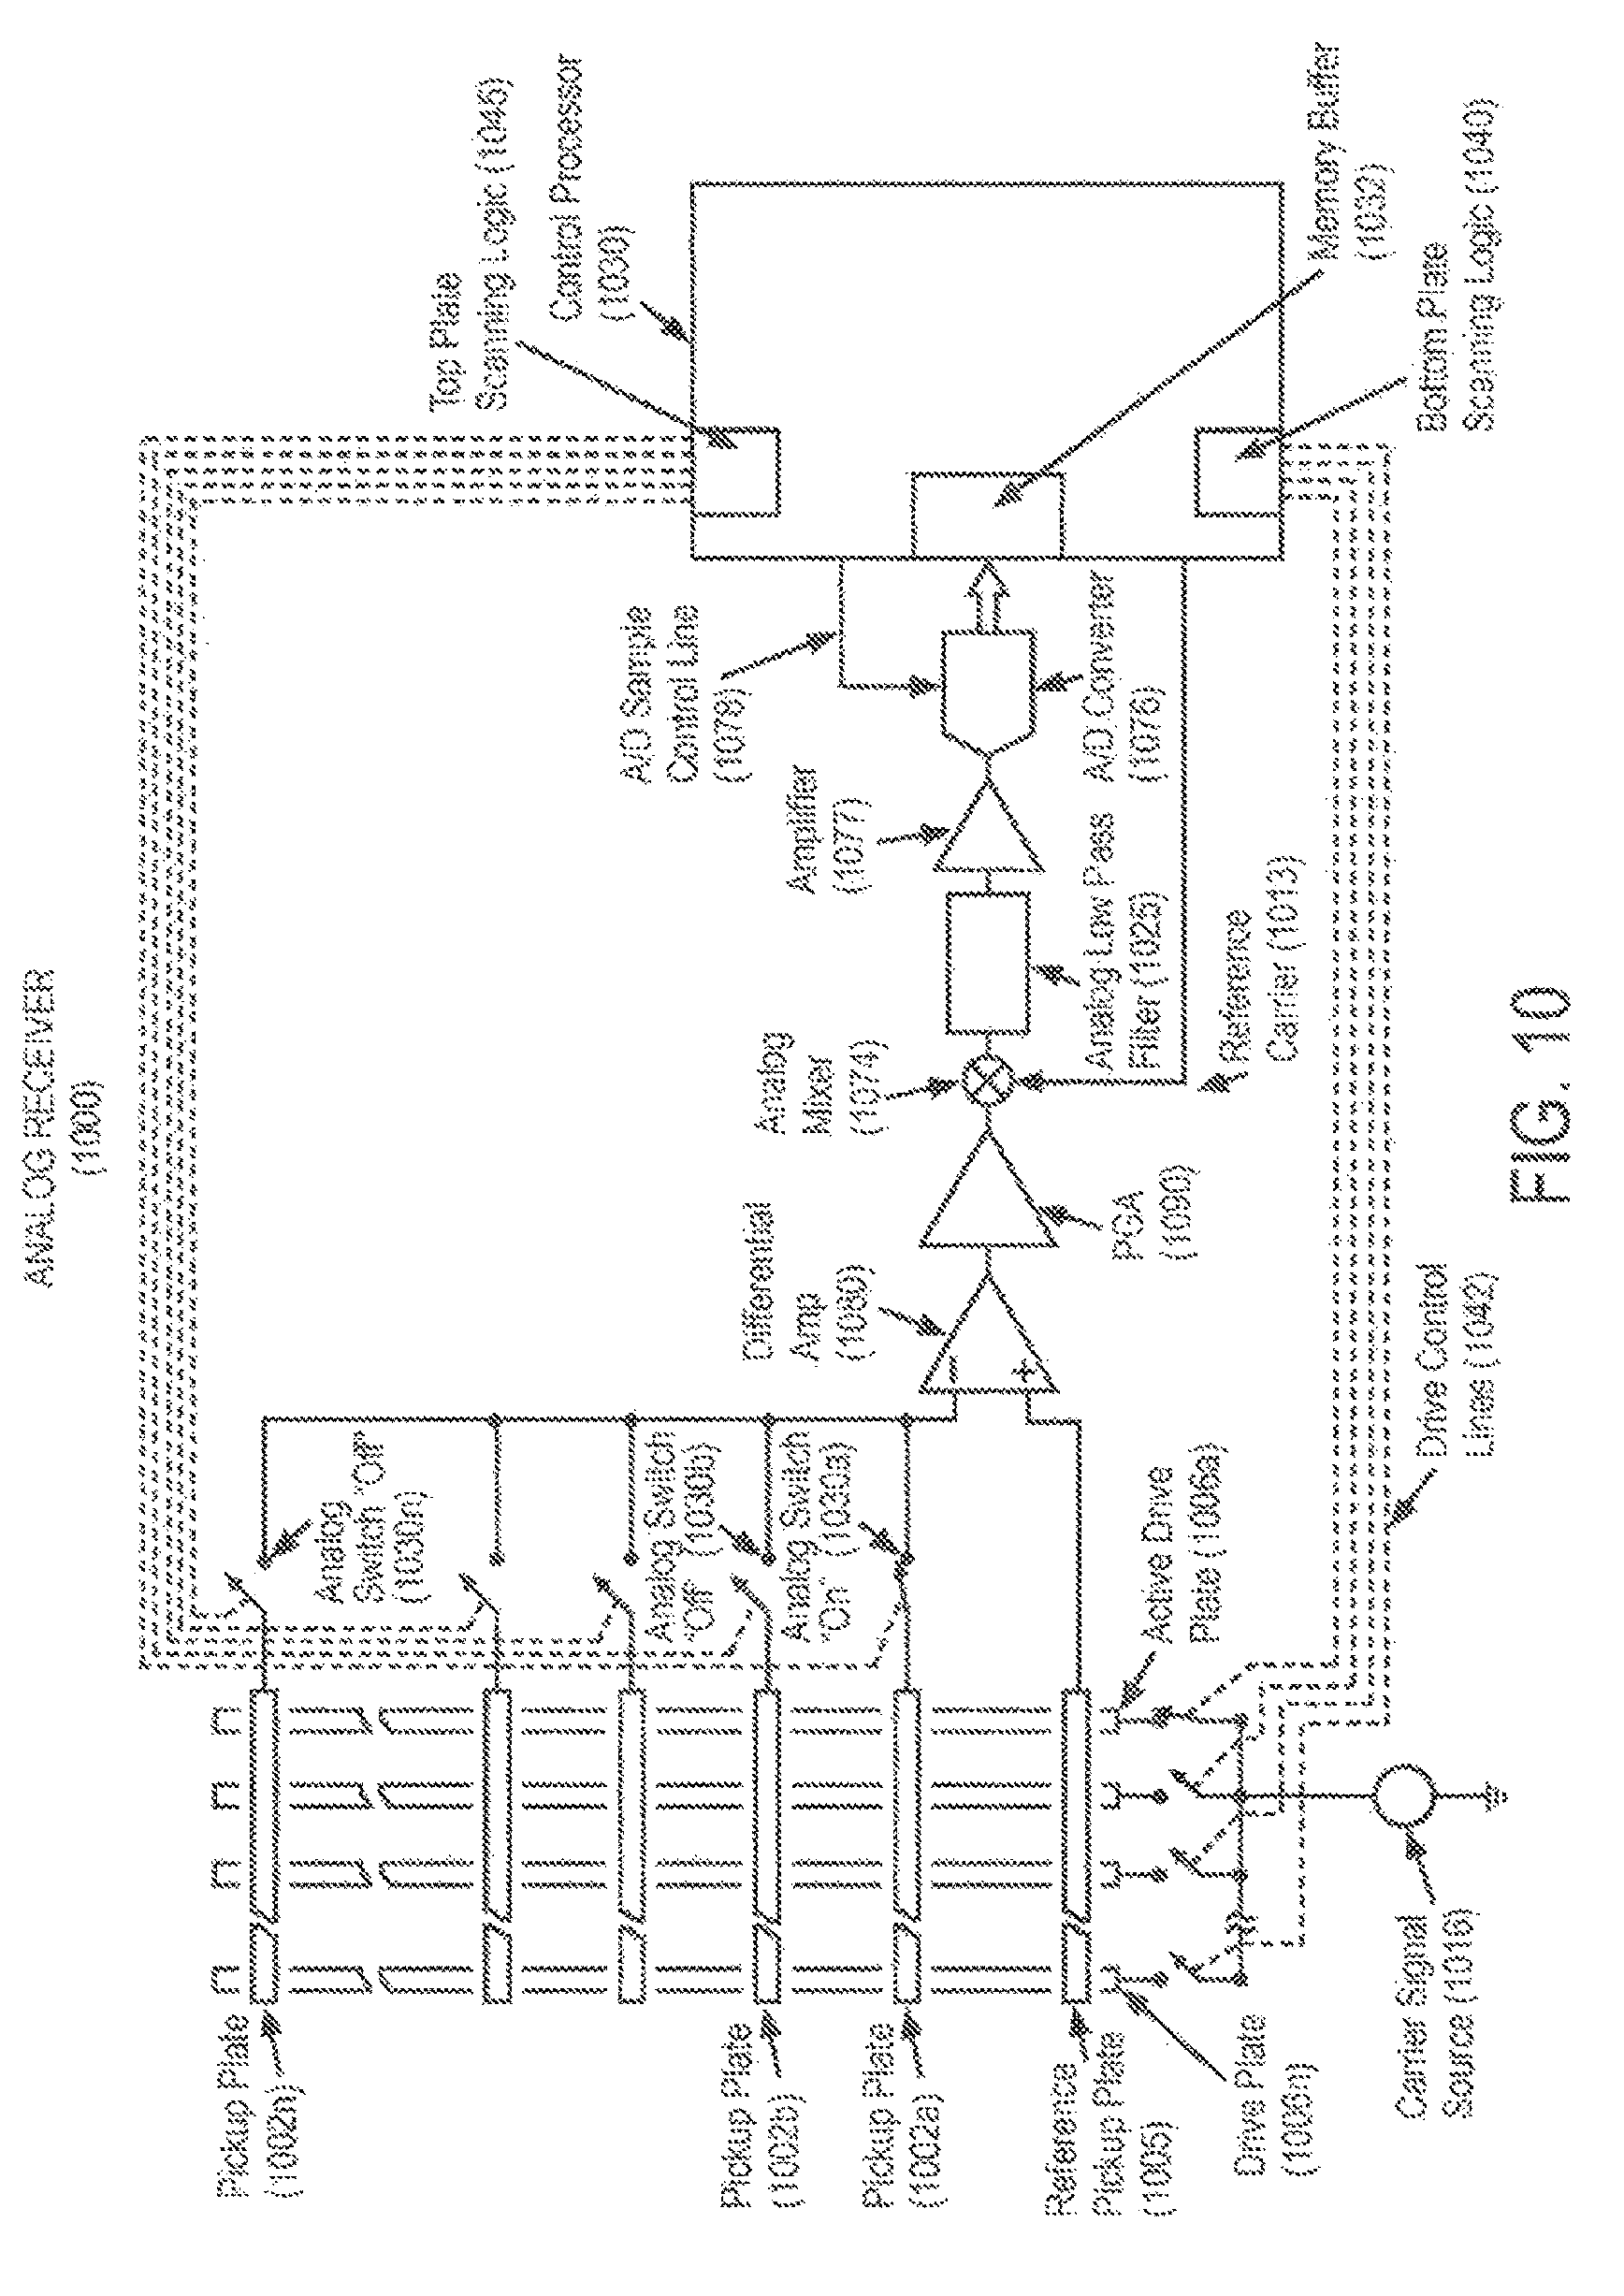 Patent Us 9798917 B2 About Gain Programmable Isolation Amplifier Circuit Othercircuit